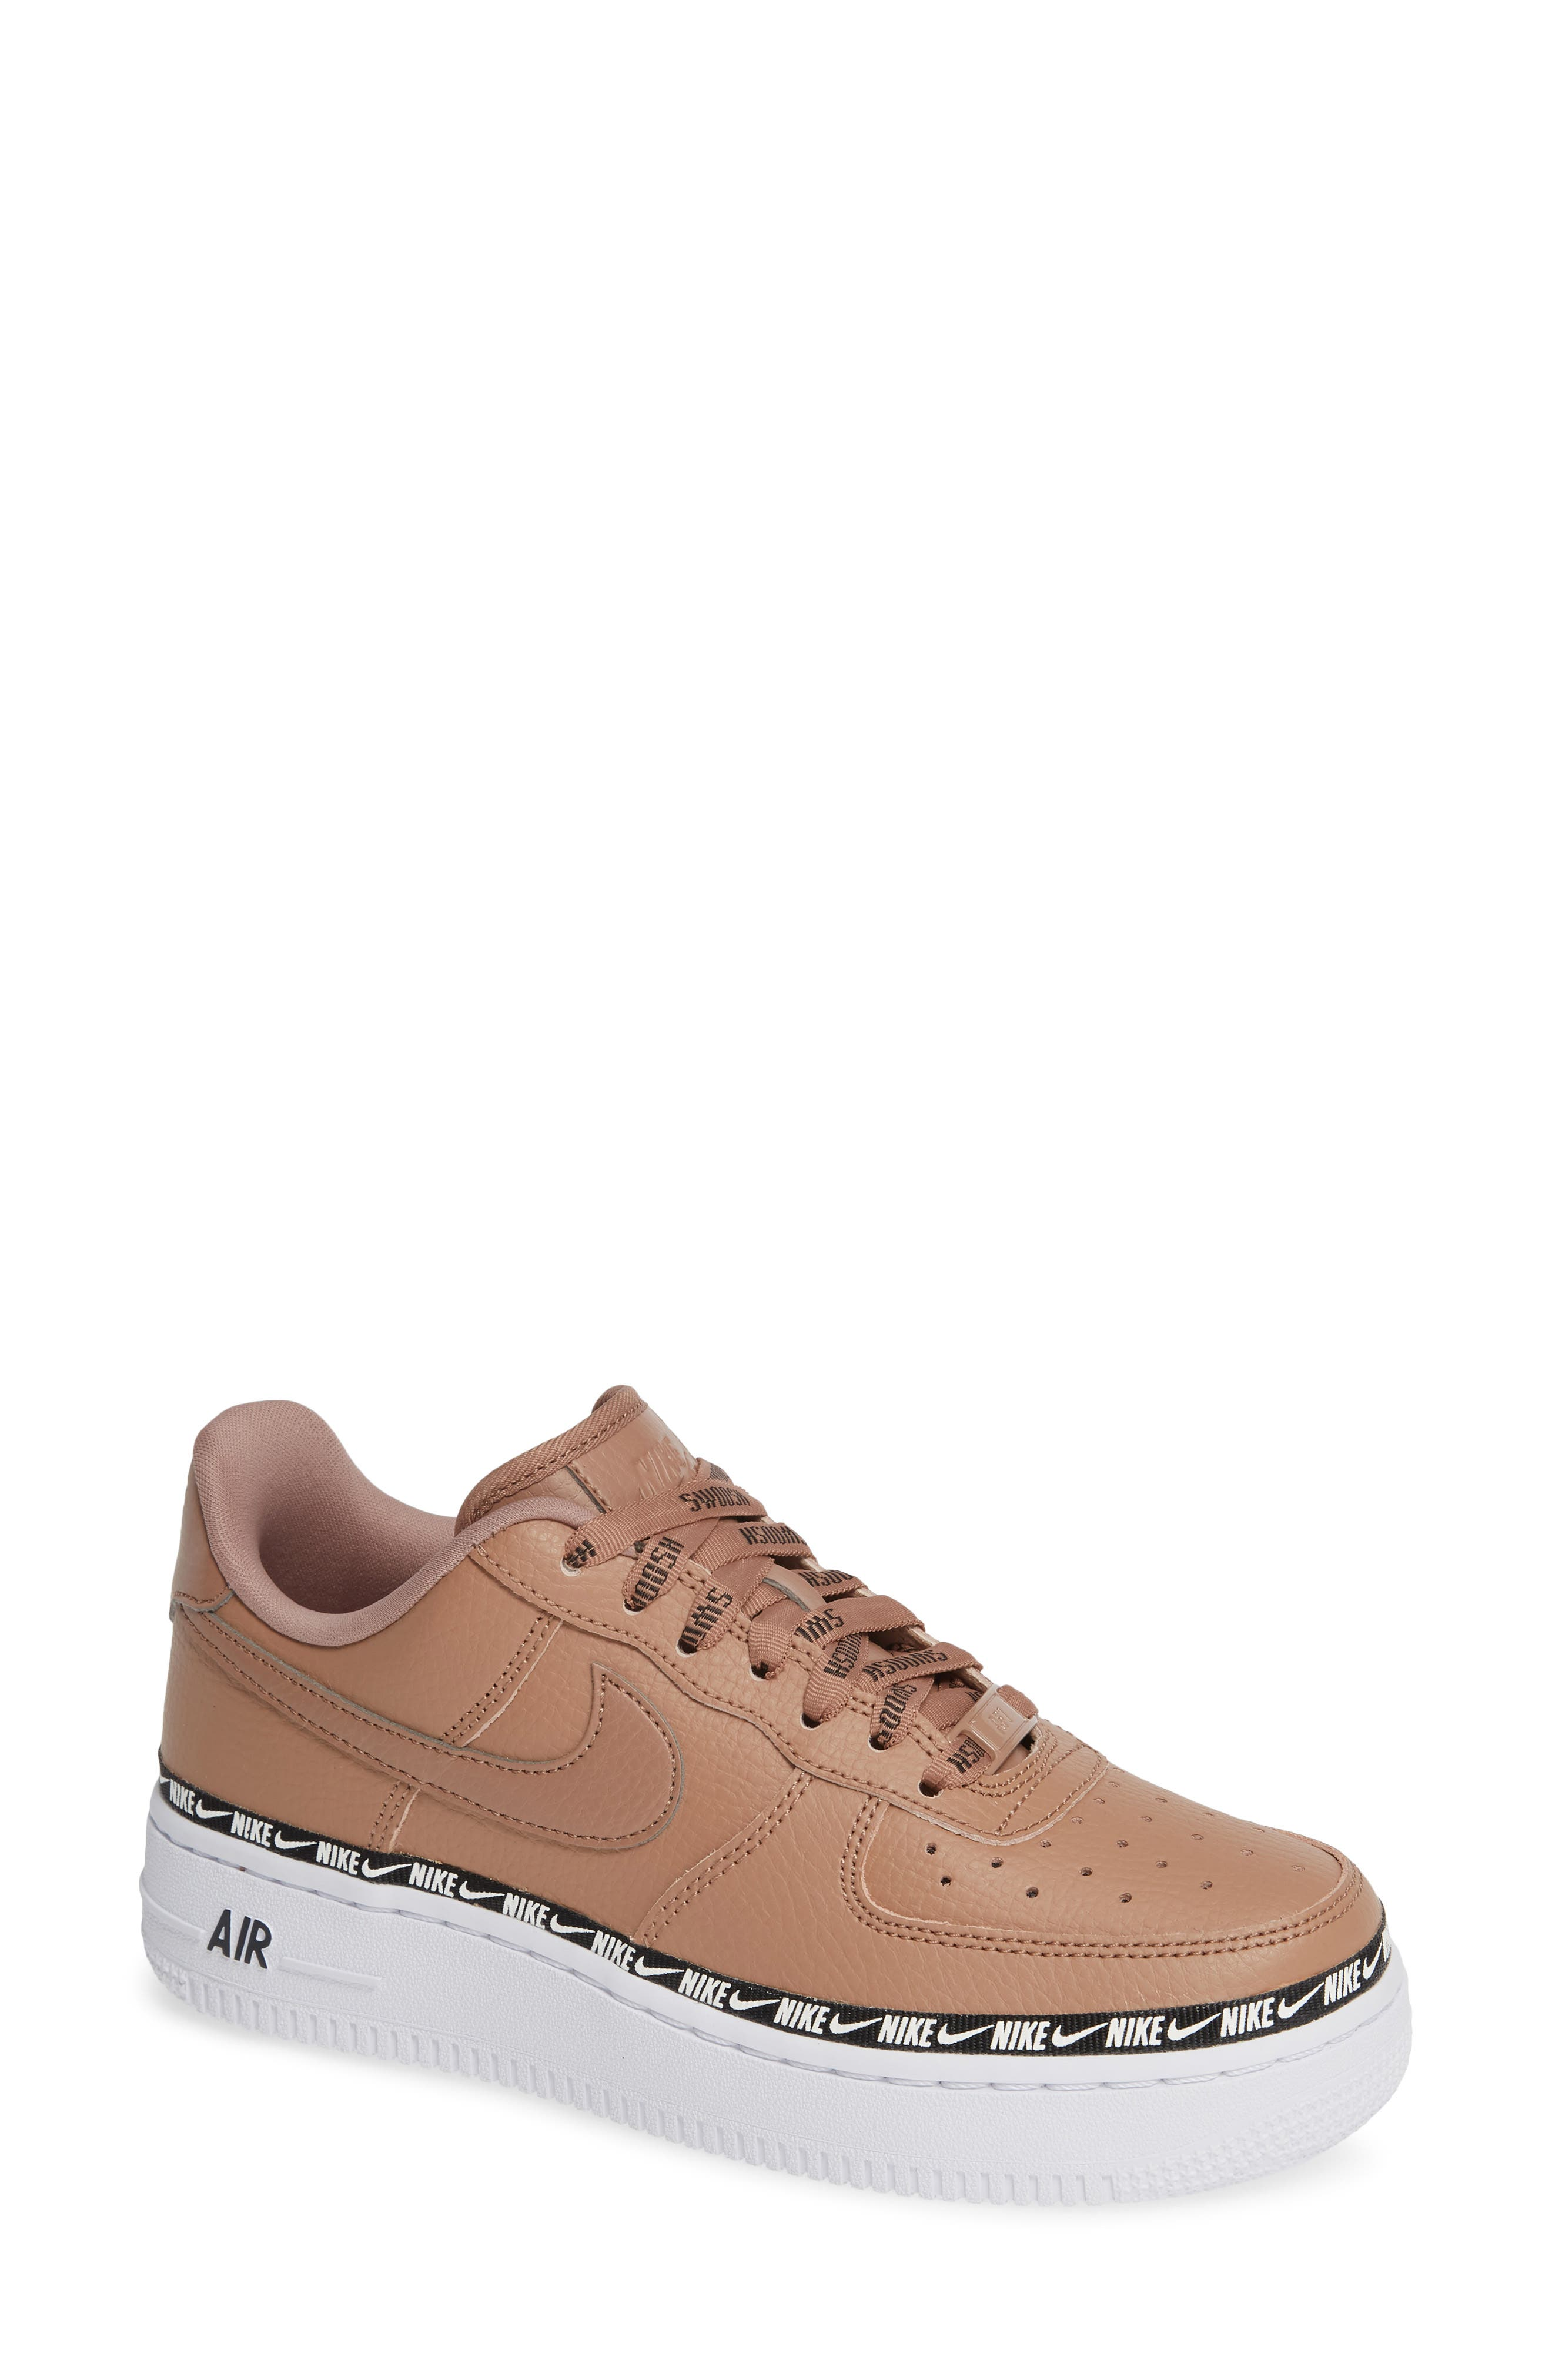 Air Force 1 '07 SE Premium Sneaker,                             Main thumbnail 1, color,                             DESERT DUST/ BLACK/ WHITE